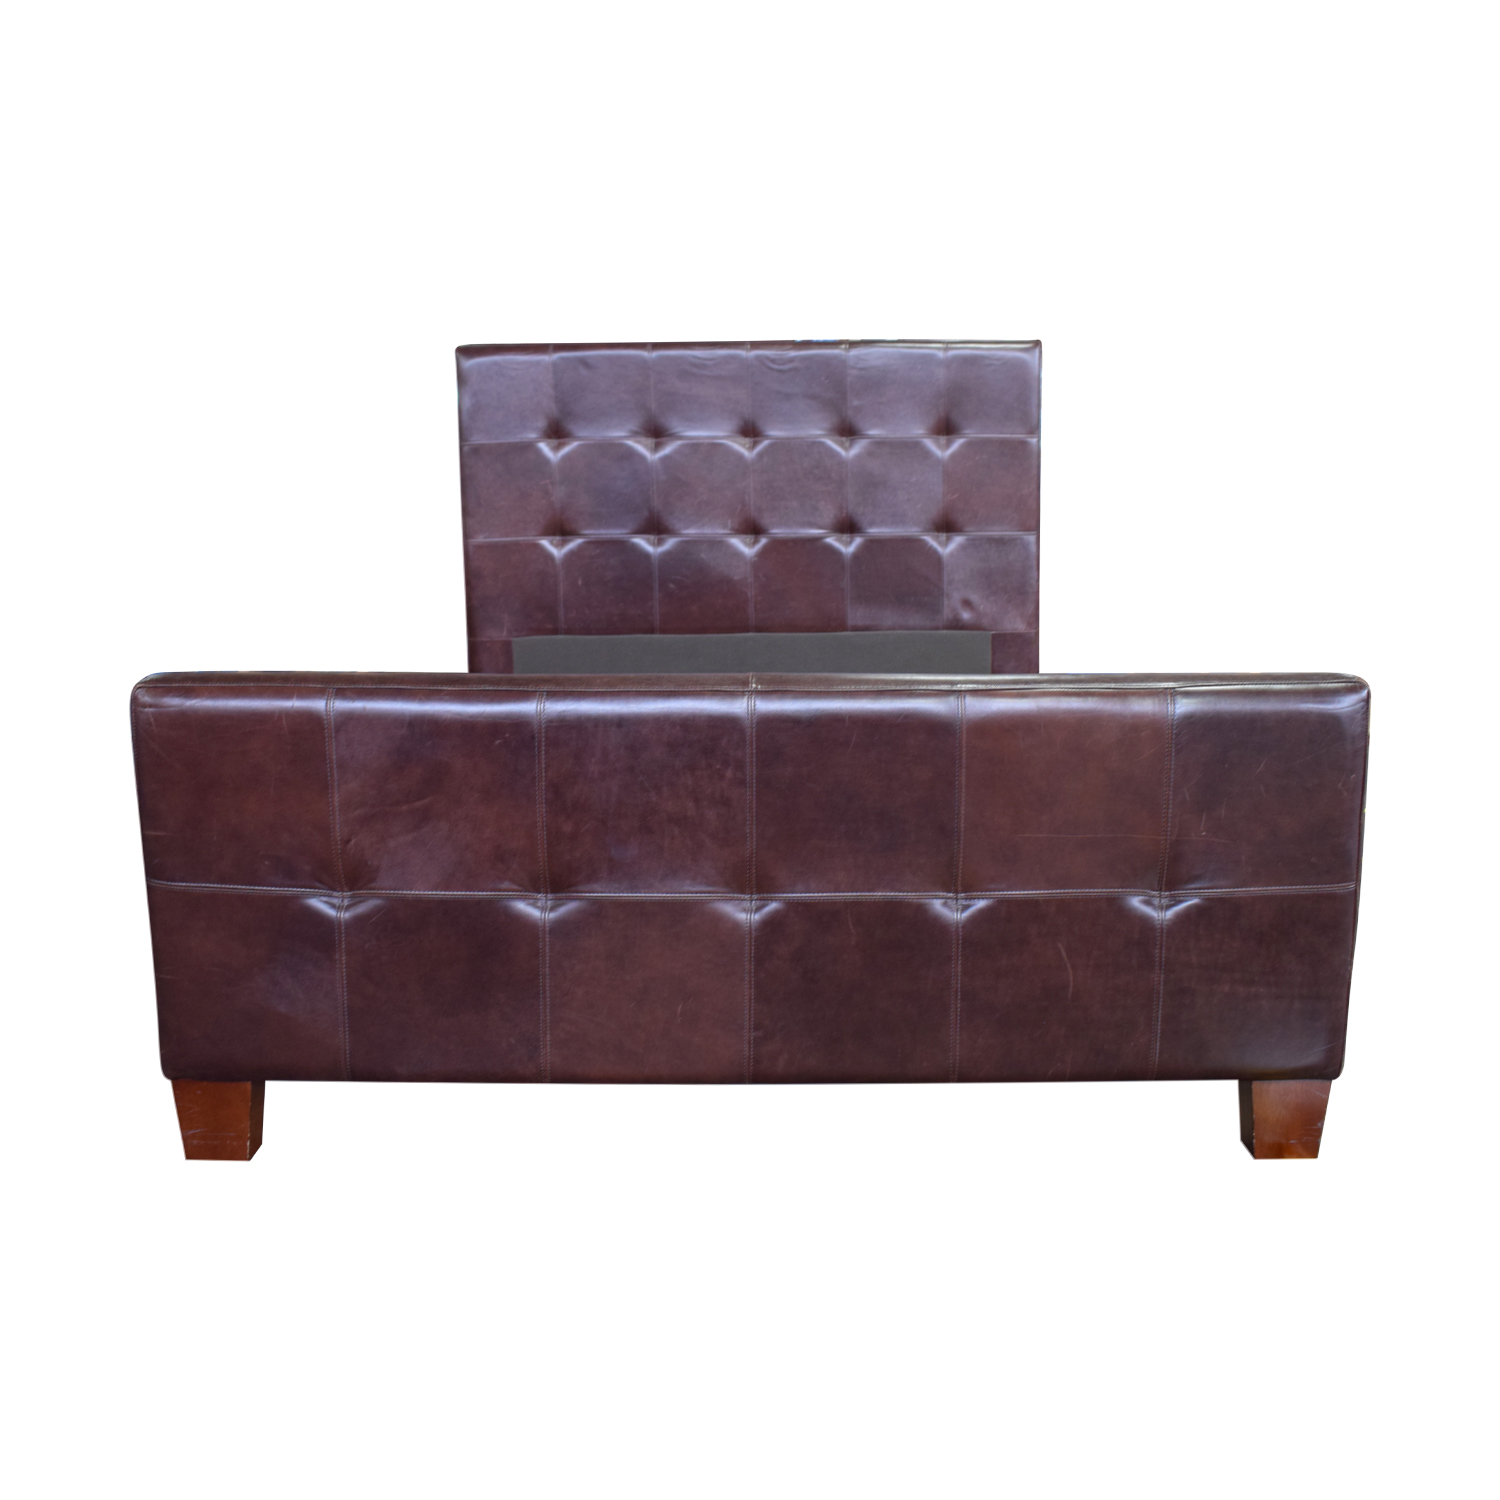 Crate & Barrel Crate & Barrel Brown Tufted Leather Queen Bed discount